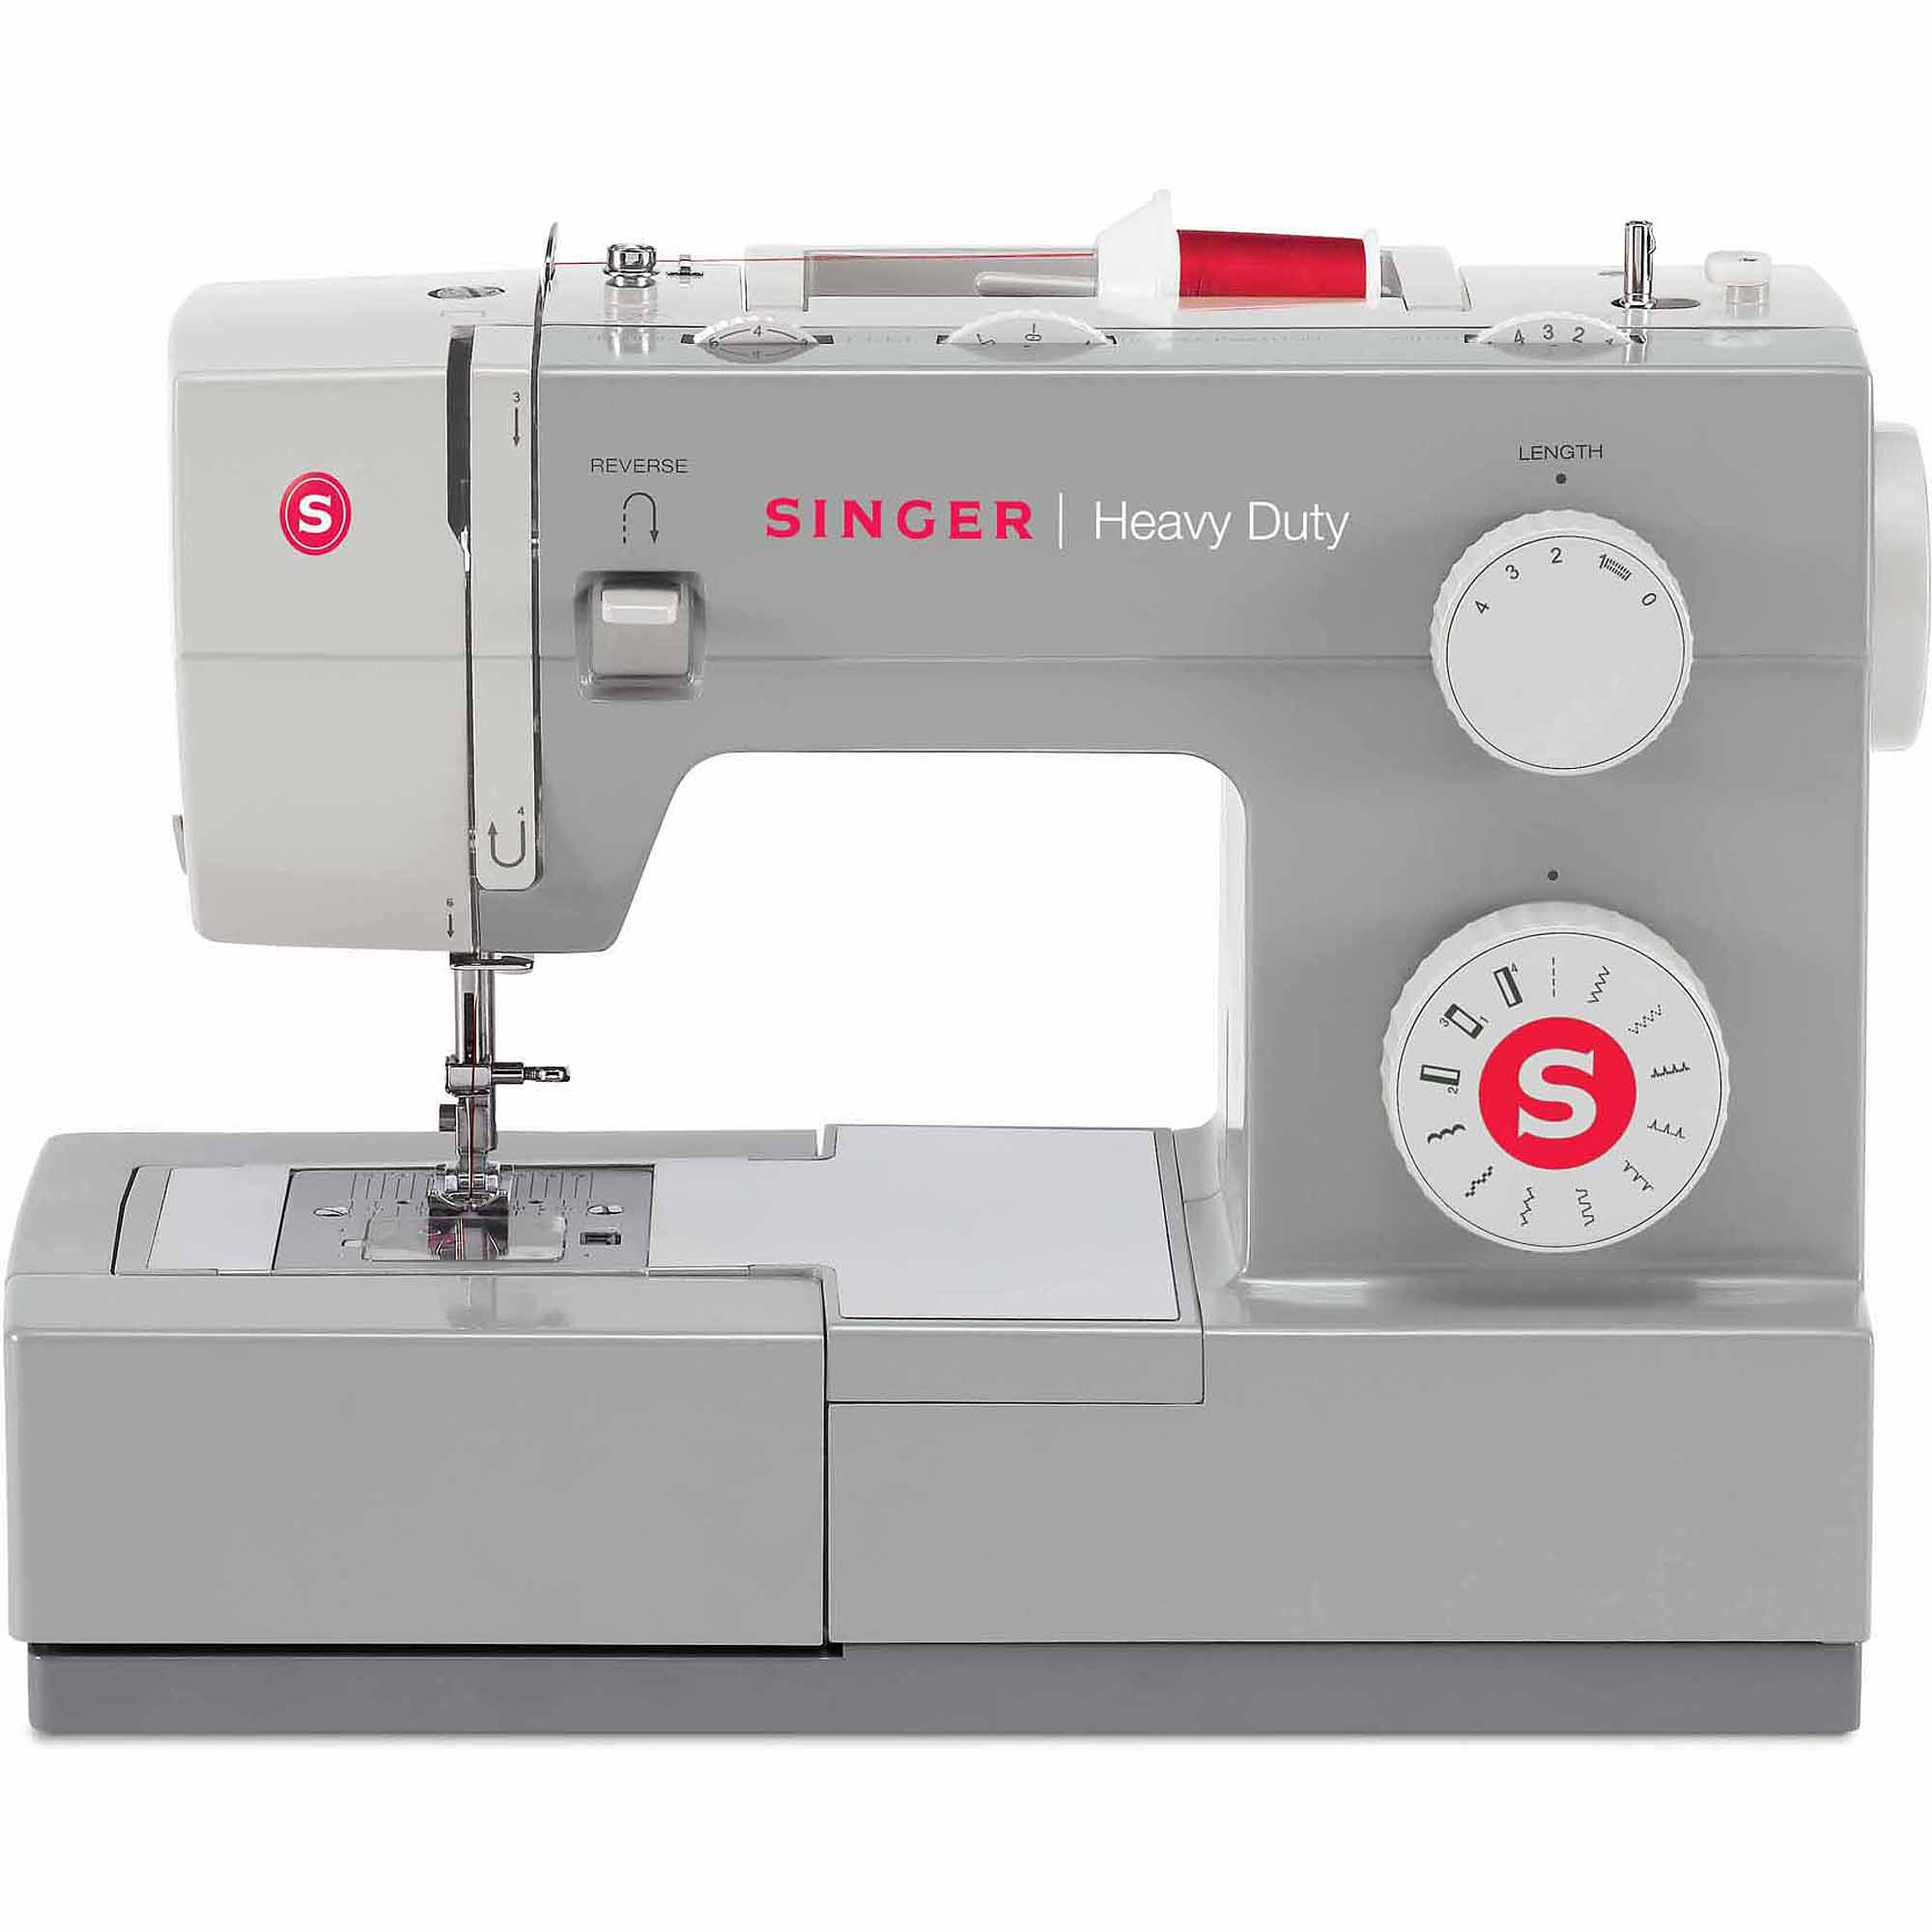 Singer 4411 Heavy Duty Sewing Machine - High Speed  1,100 stitches per minute